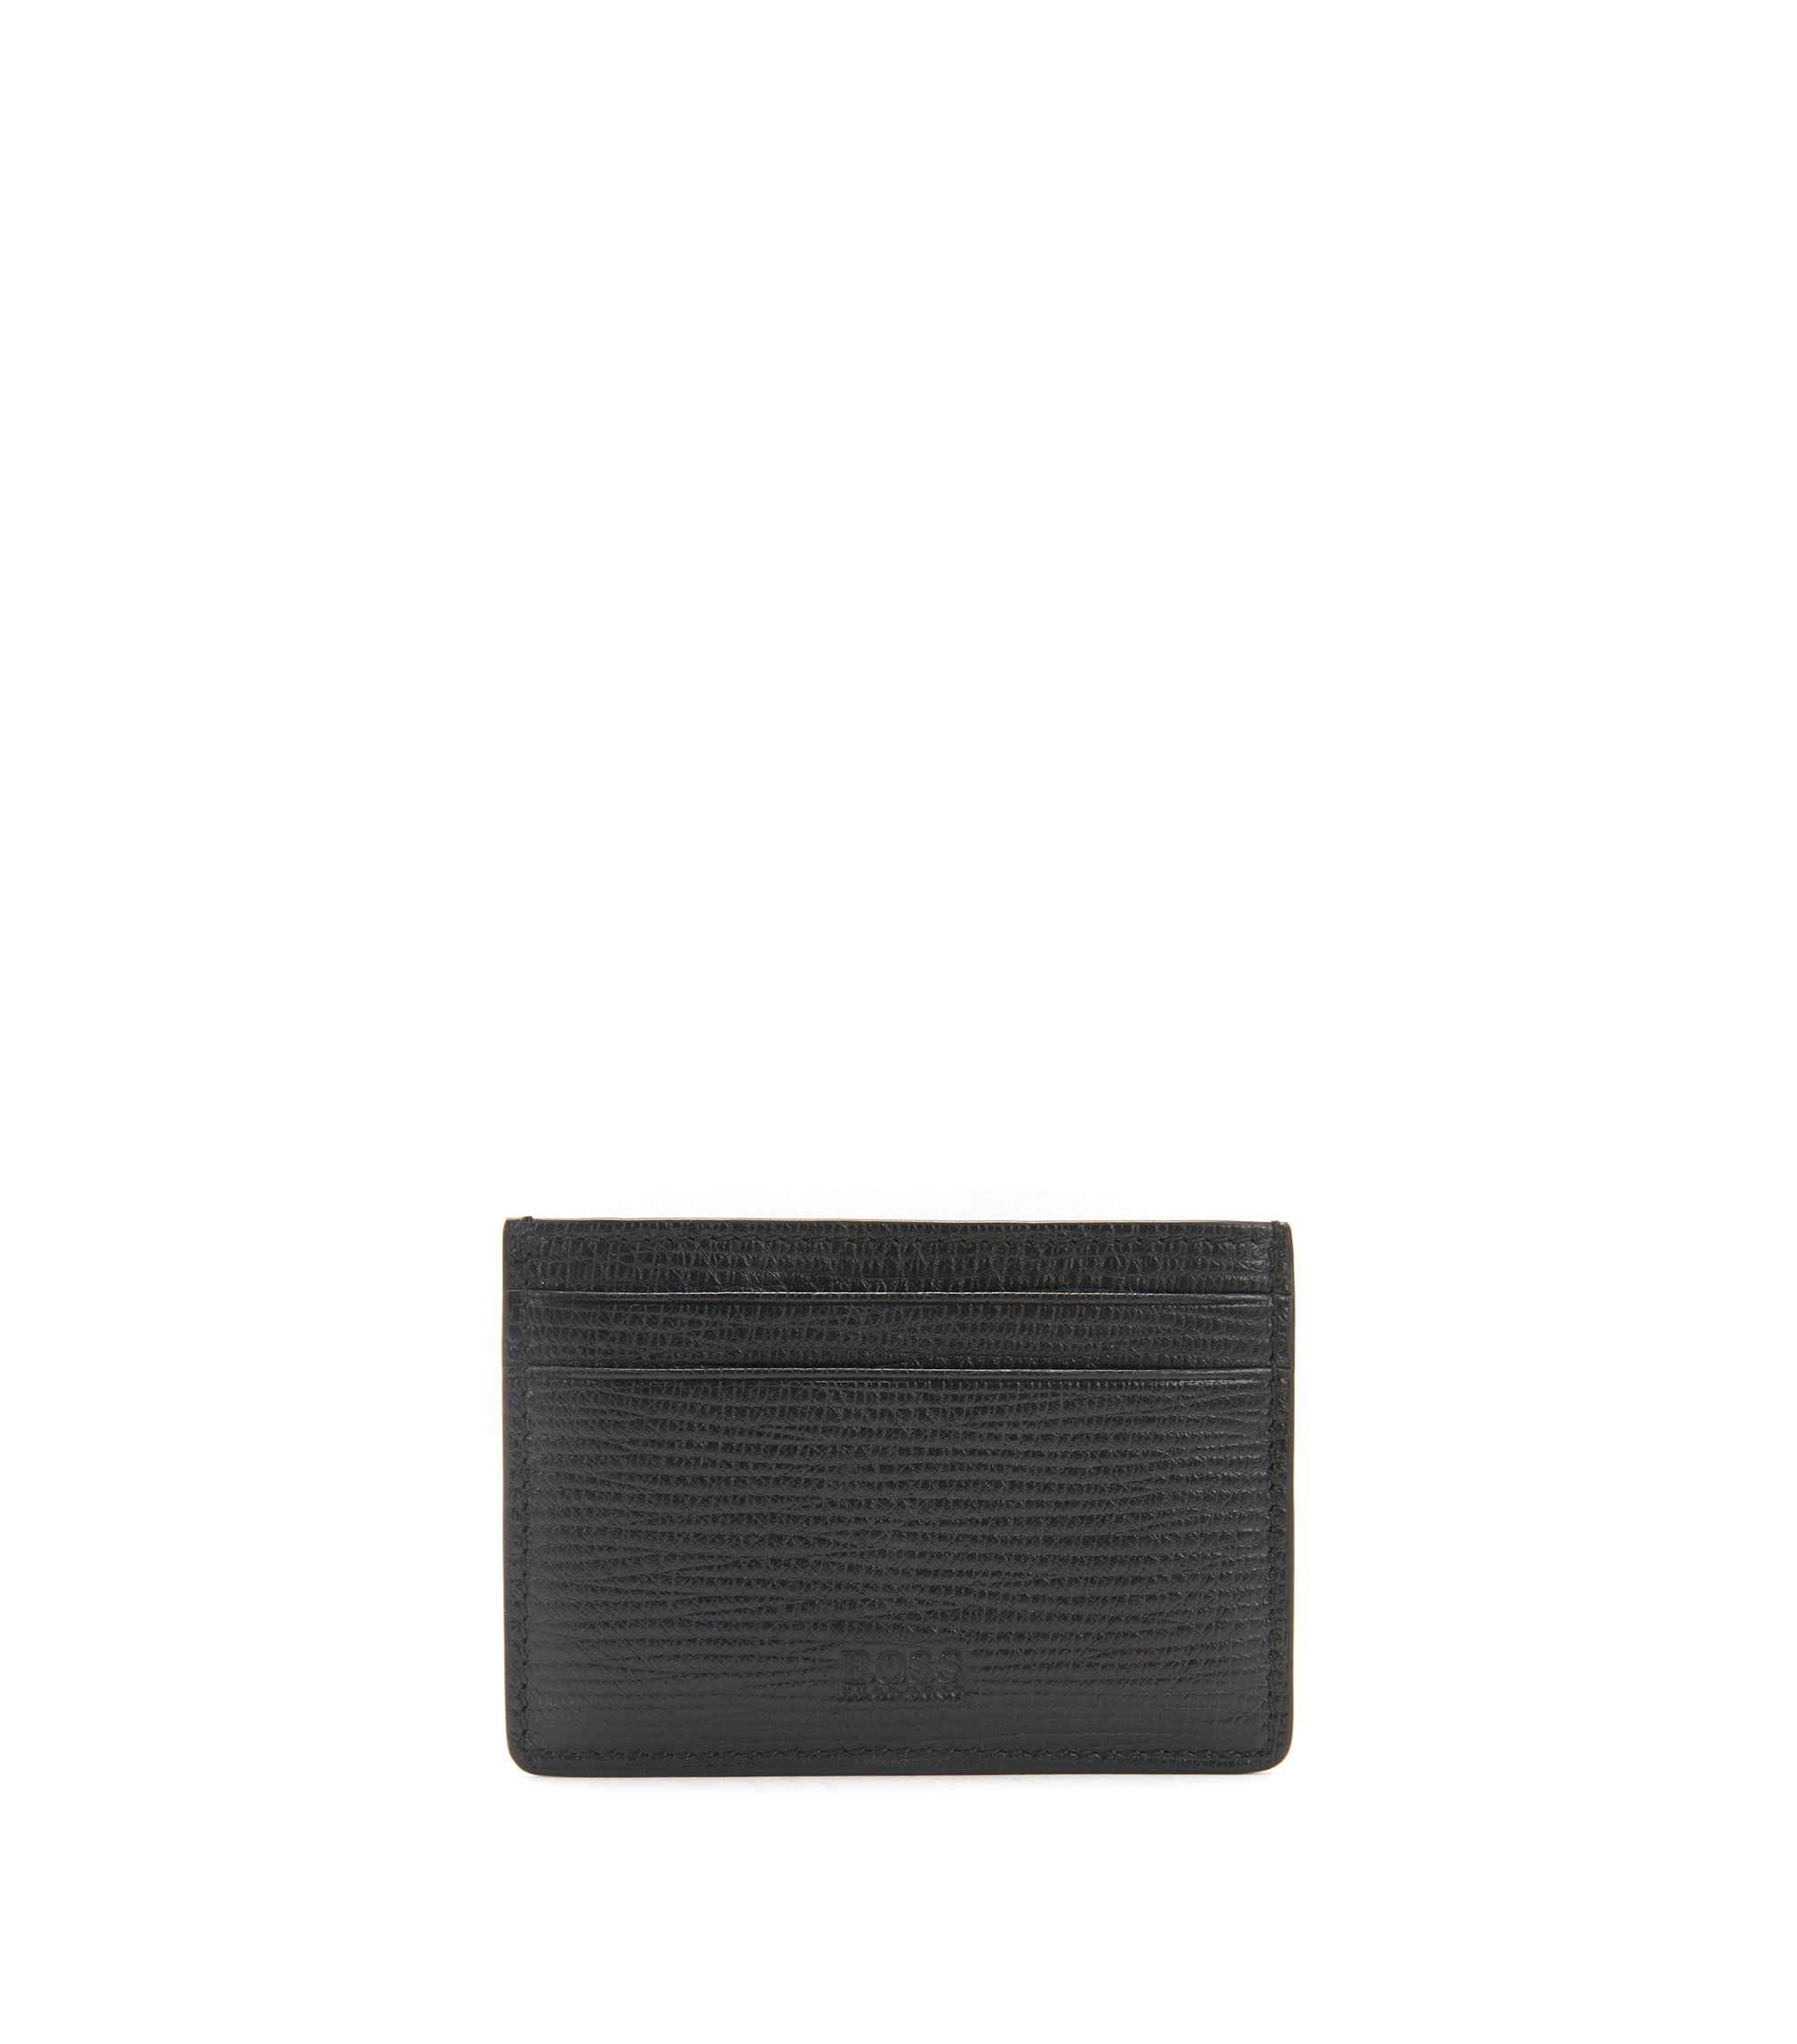 Card Holder With Money Clip | Timeless Money Clip, Black